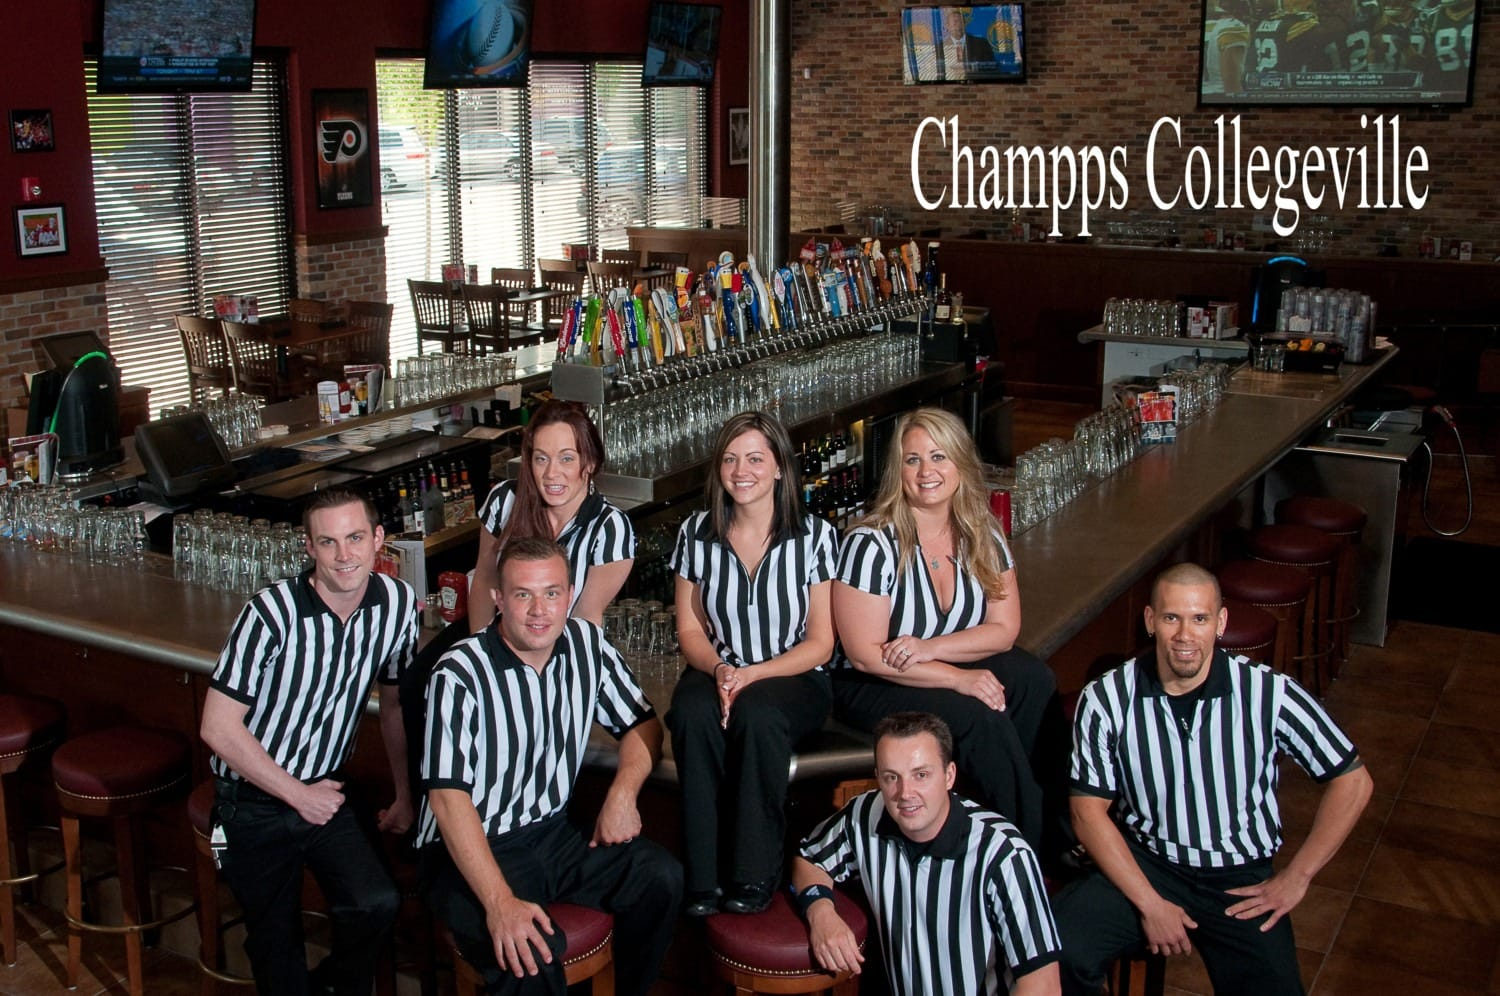 Champs Collegeville John Kellar Photography